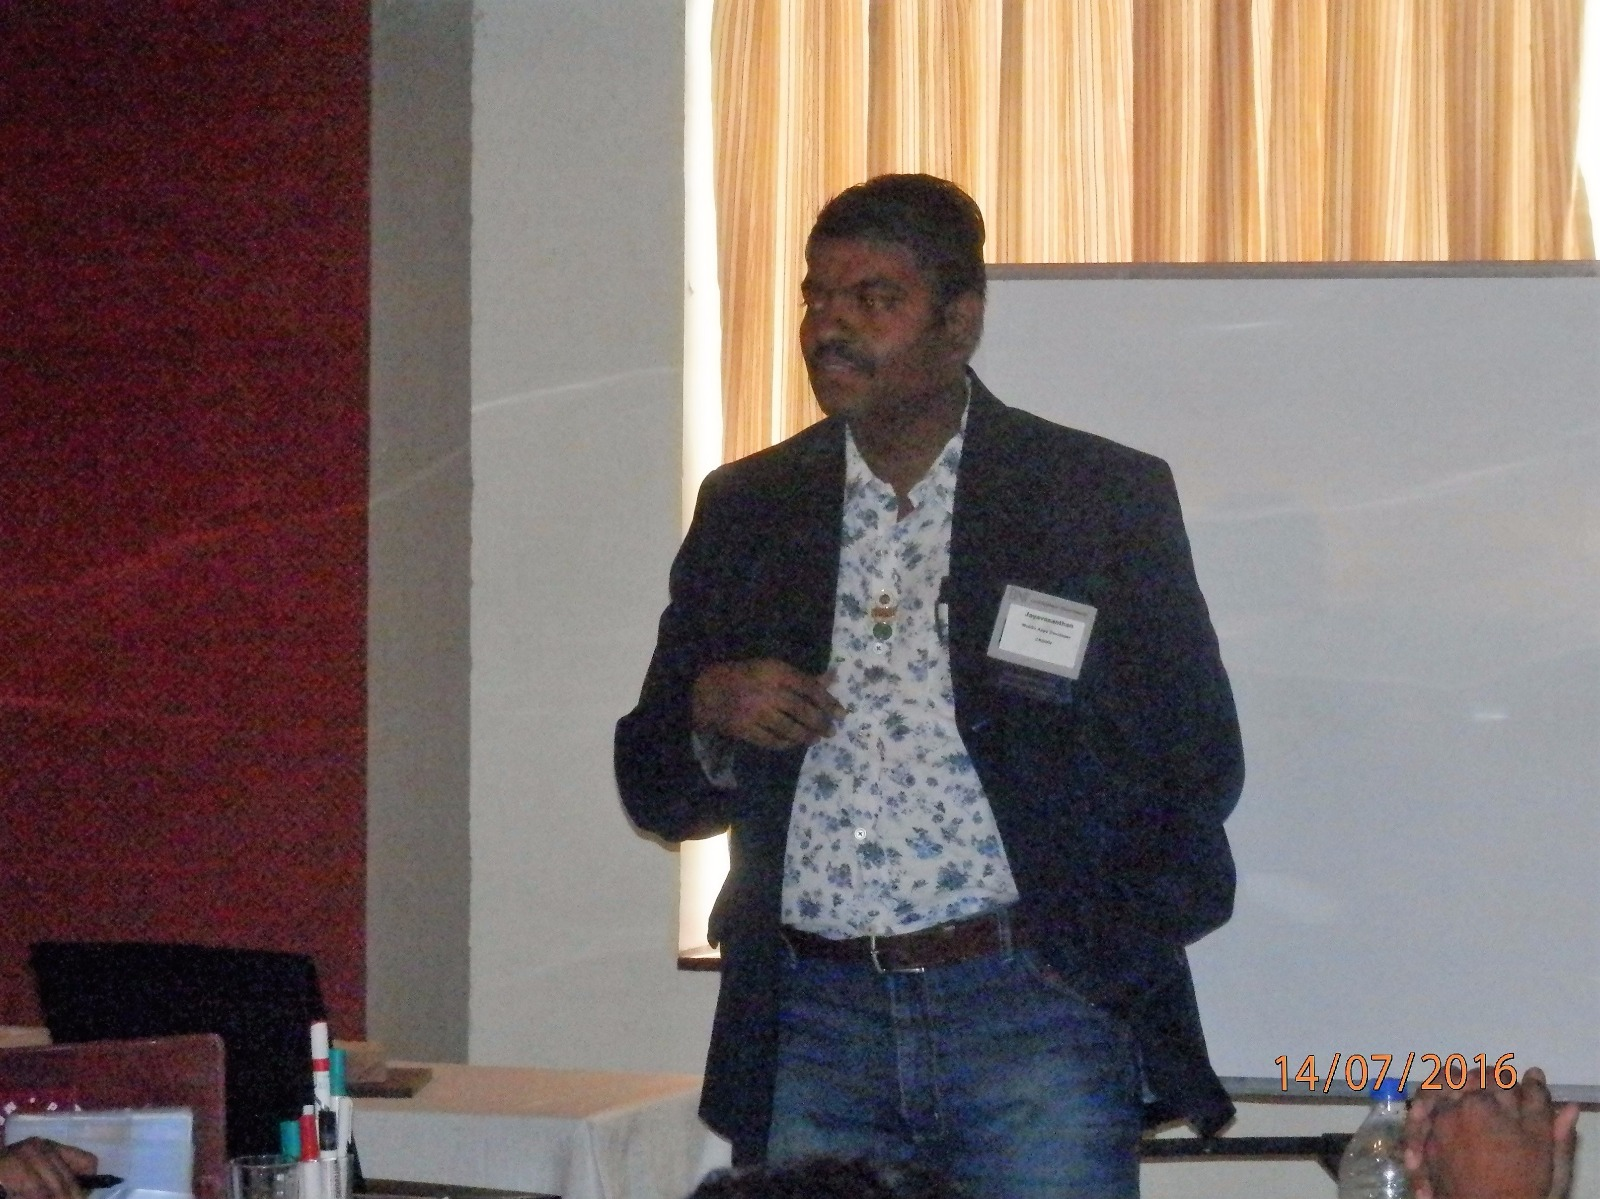 SOCAmps Mobile CRM - Presenting to the Audience